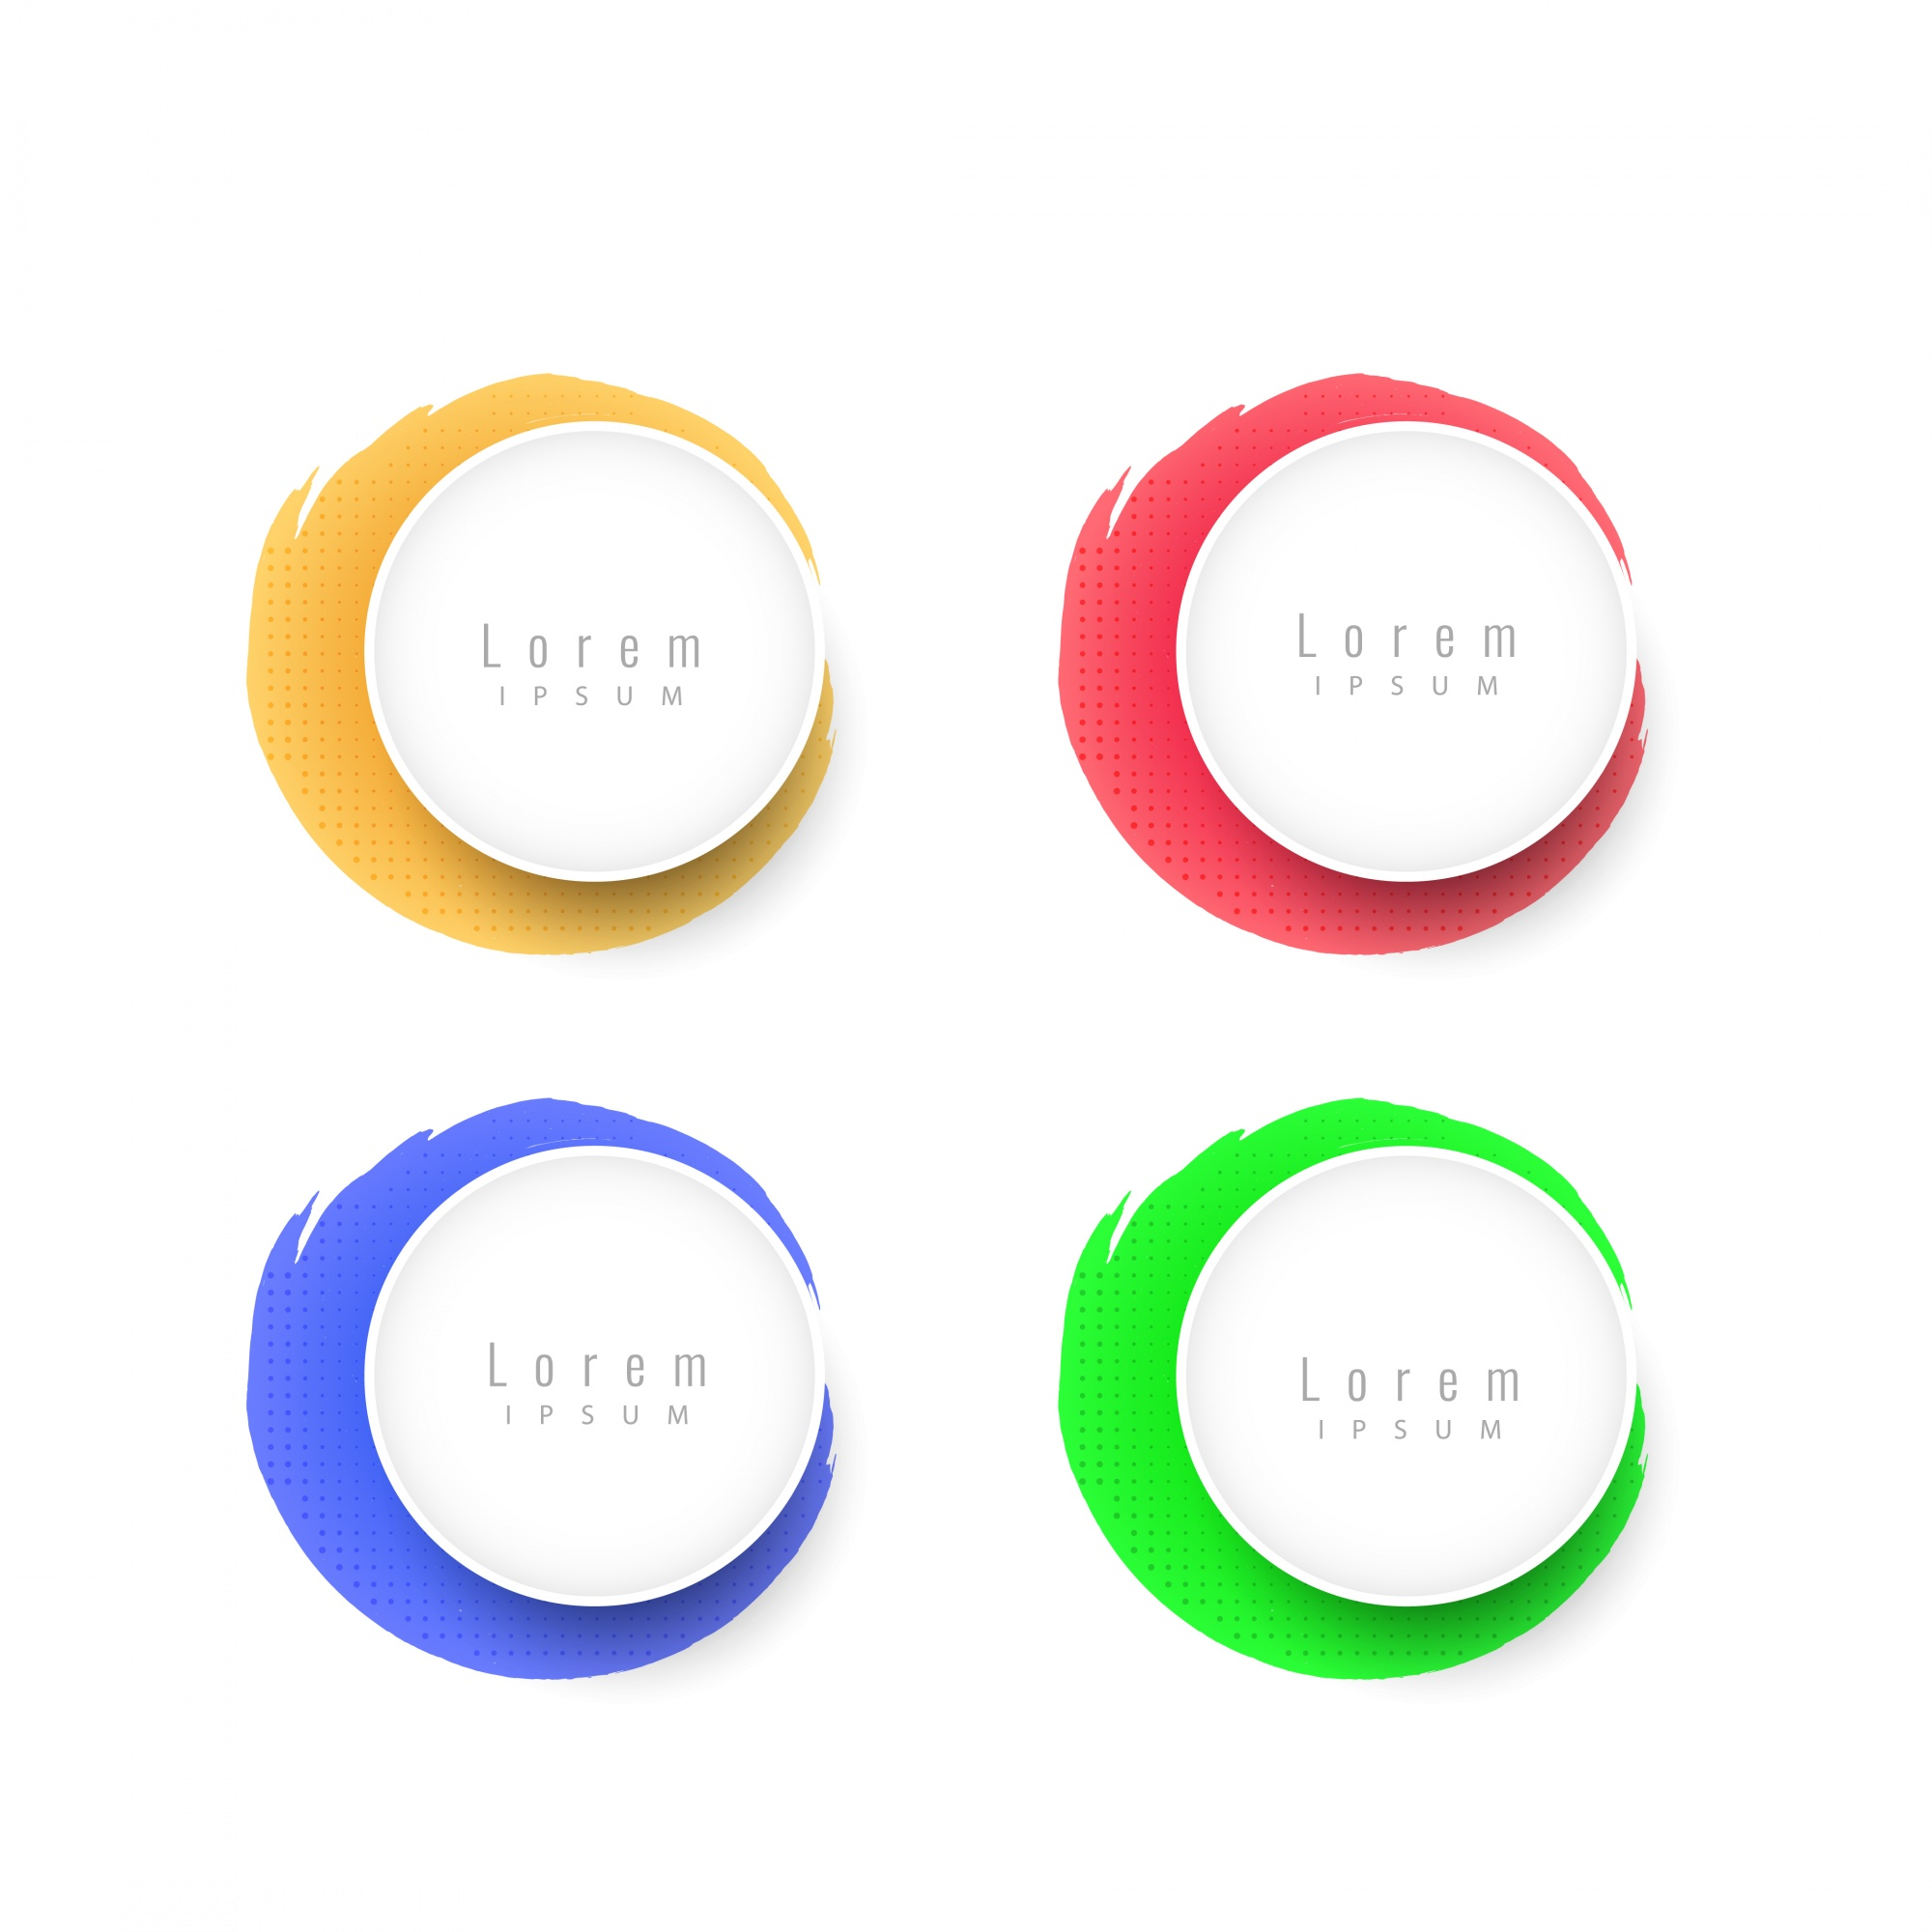 Colorful circular design elements set